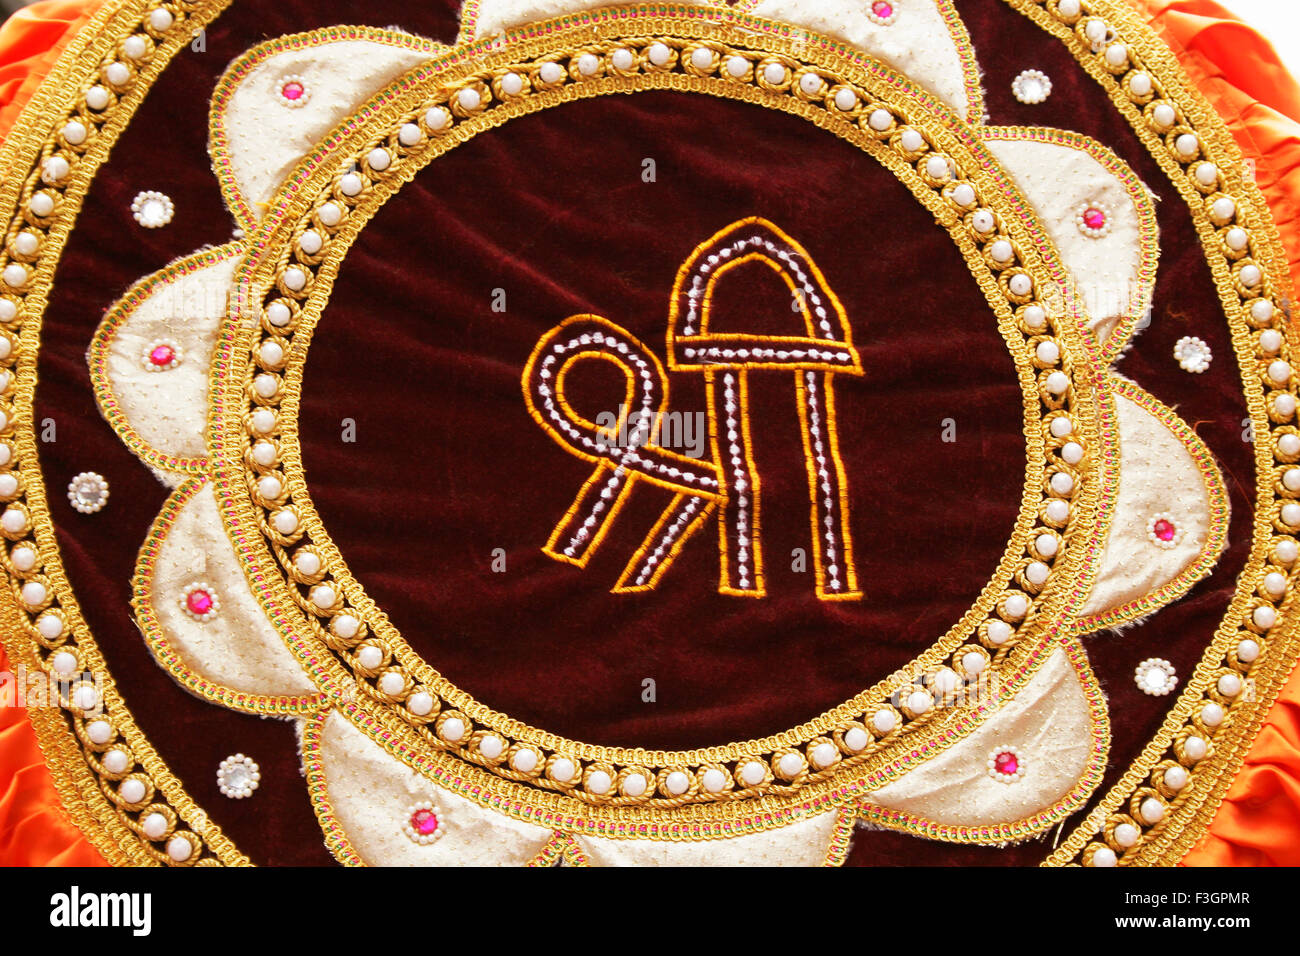 Maroon coloured velvet cloth decorated circular form of golden border and peals Shri mentioned in centre ; Pune - Stock Image